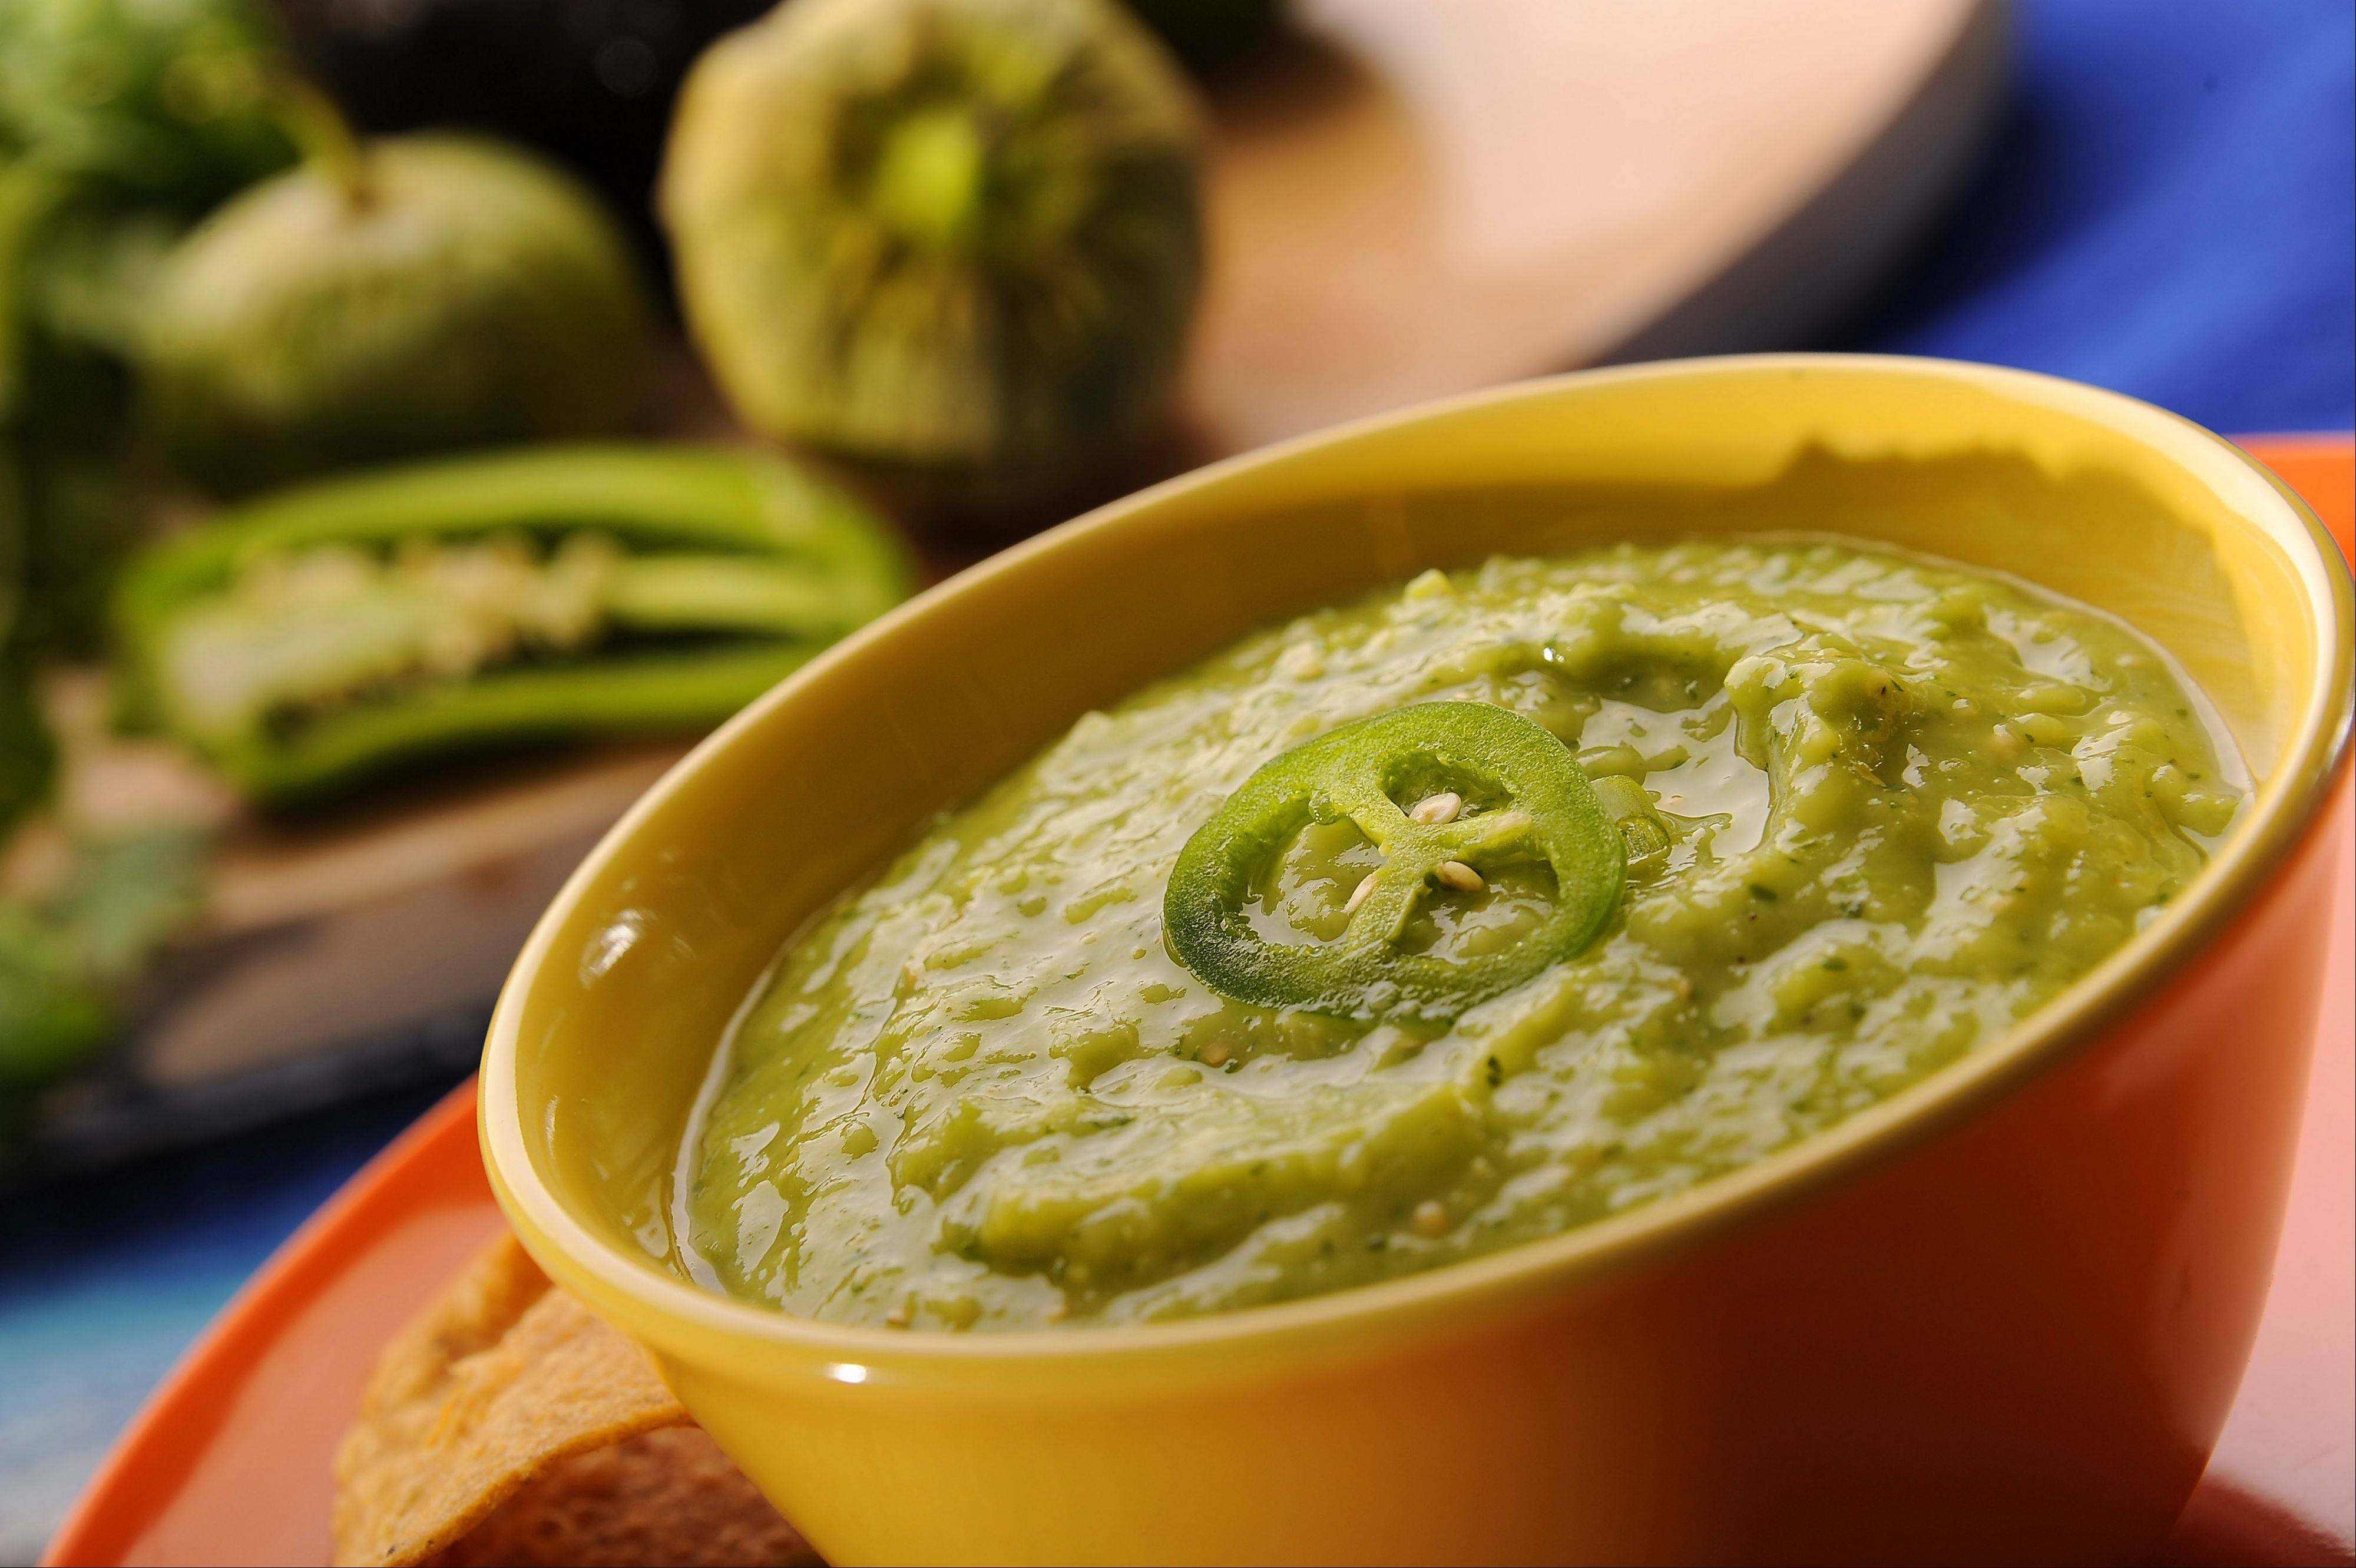 Tomatillos give a citrusy tang to this quick and easy chilled soup.